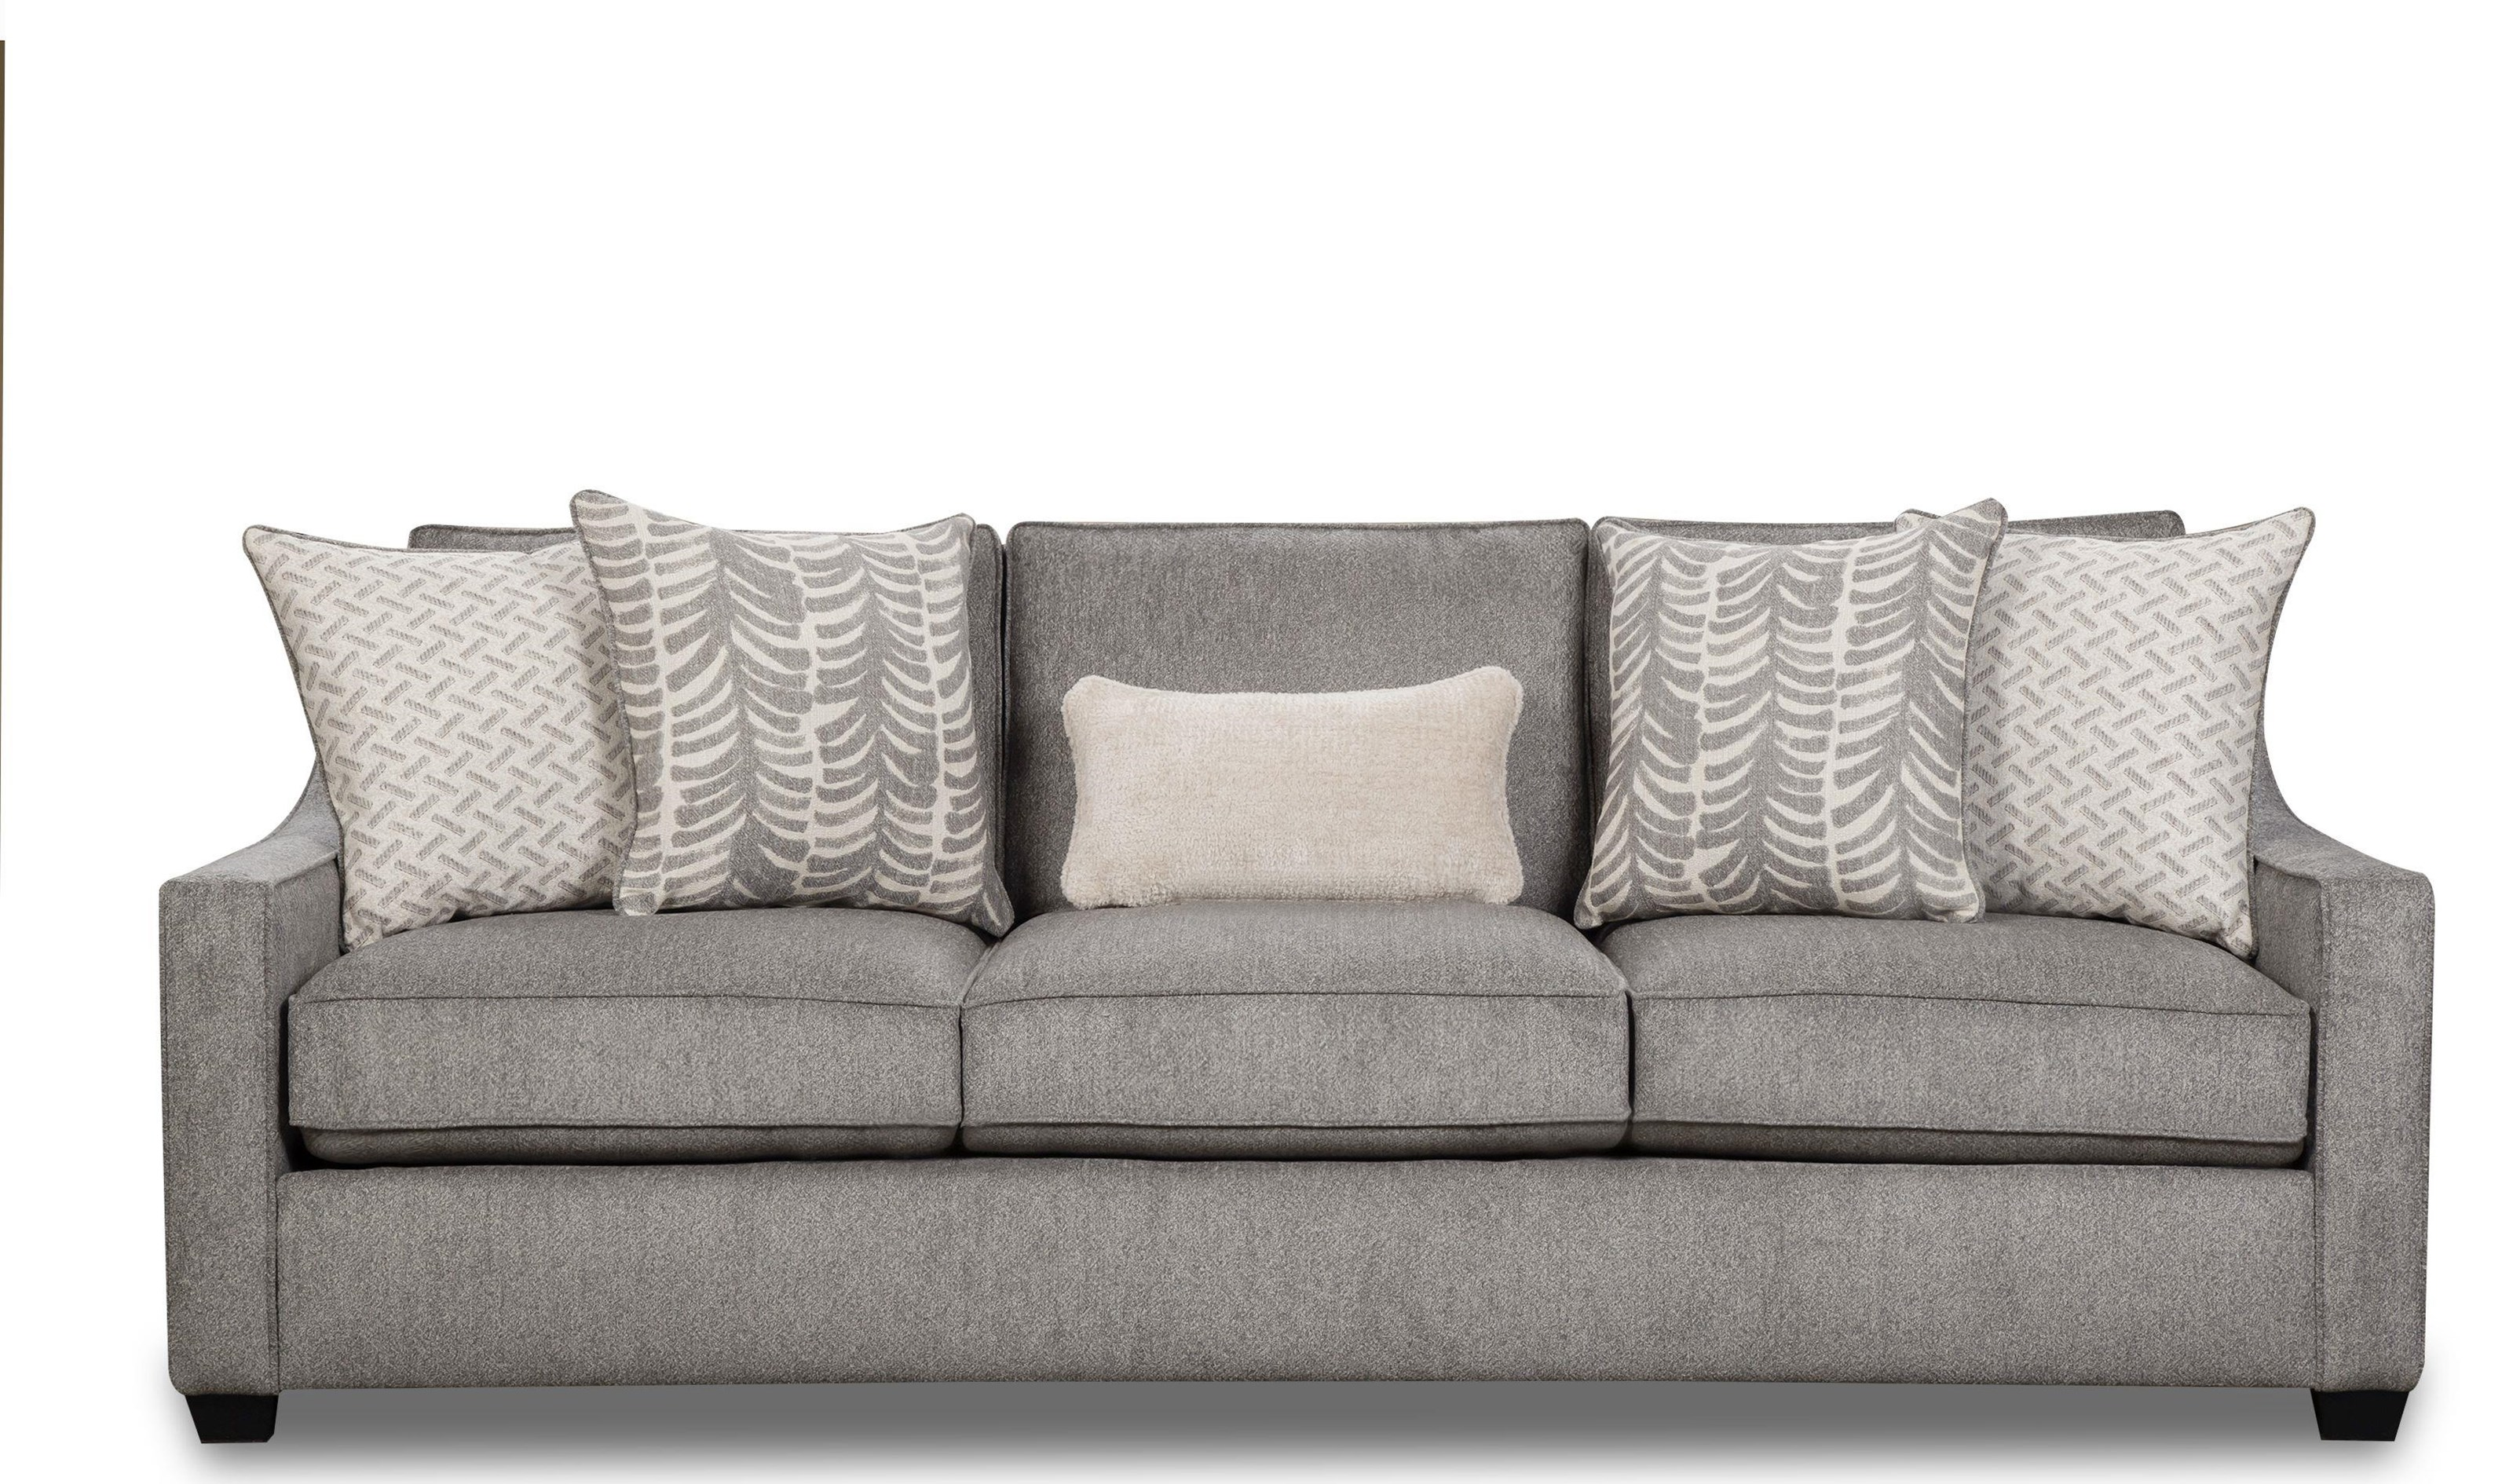 St. Charles Sofa by Behold Home at Darvin Furniture